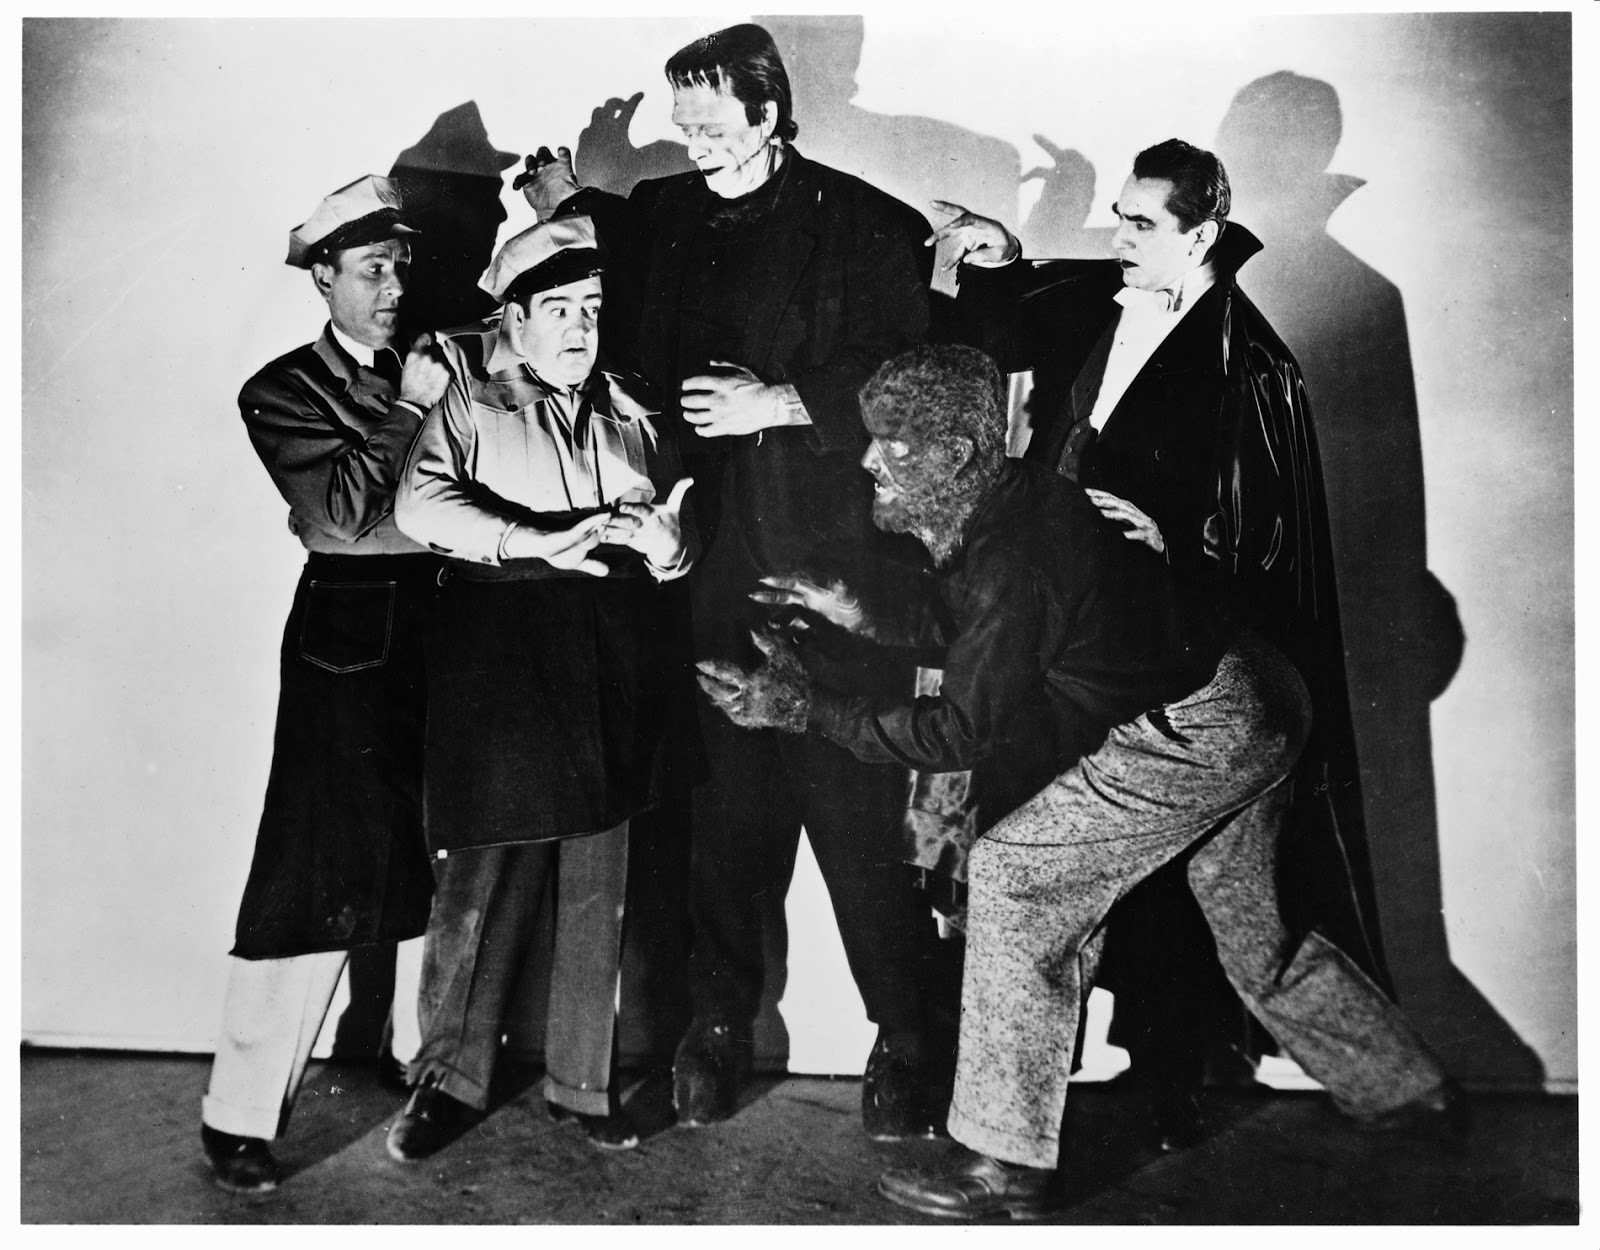 abbott costello meet frankenstein summary